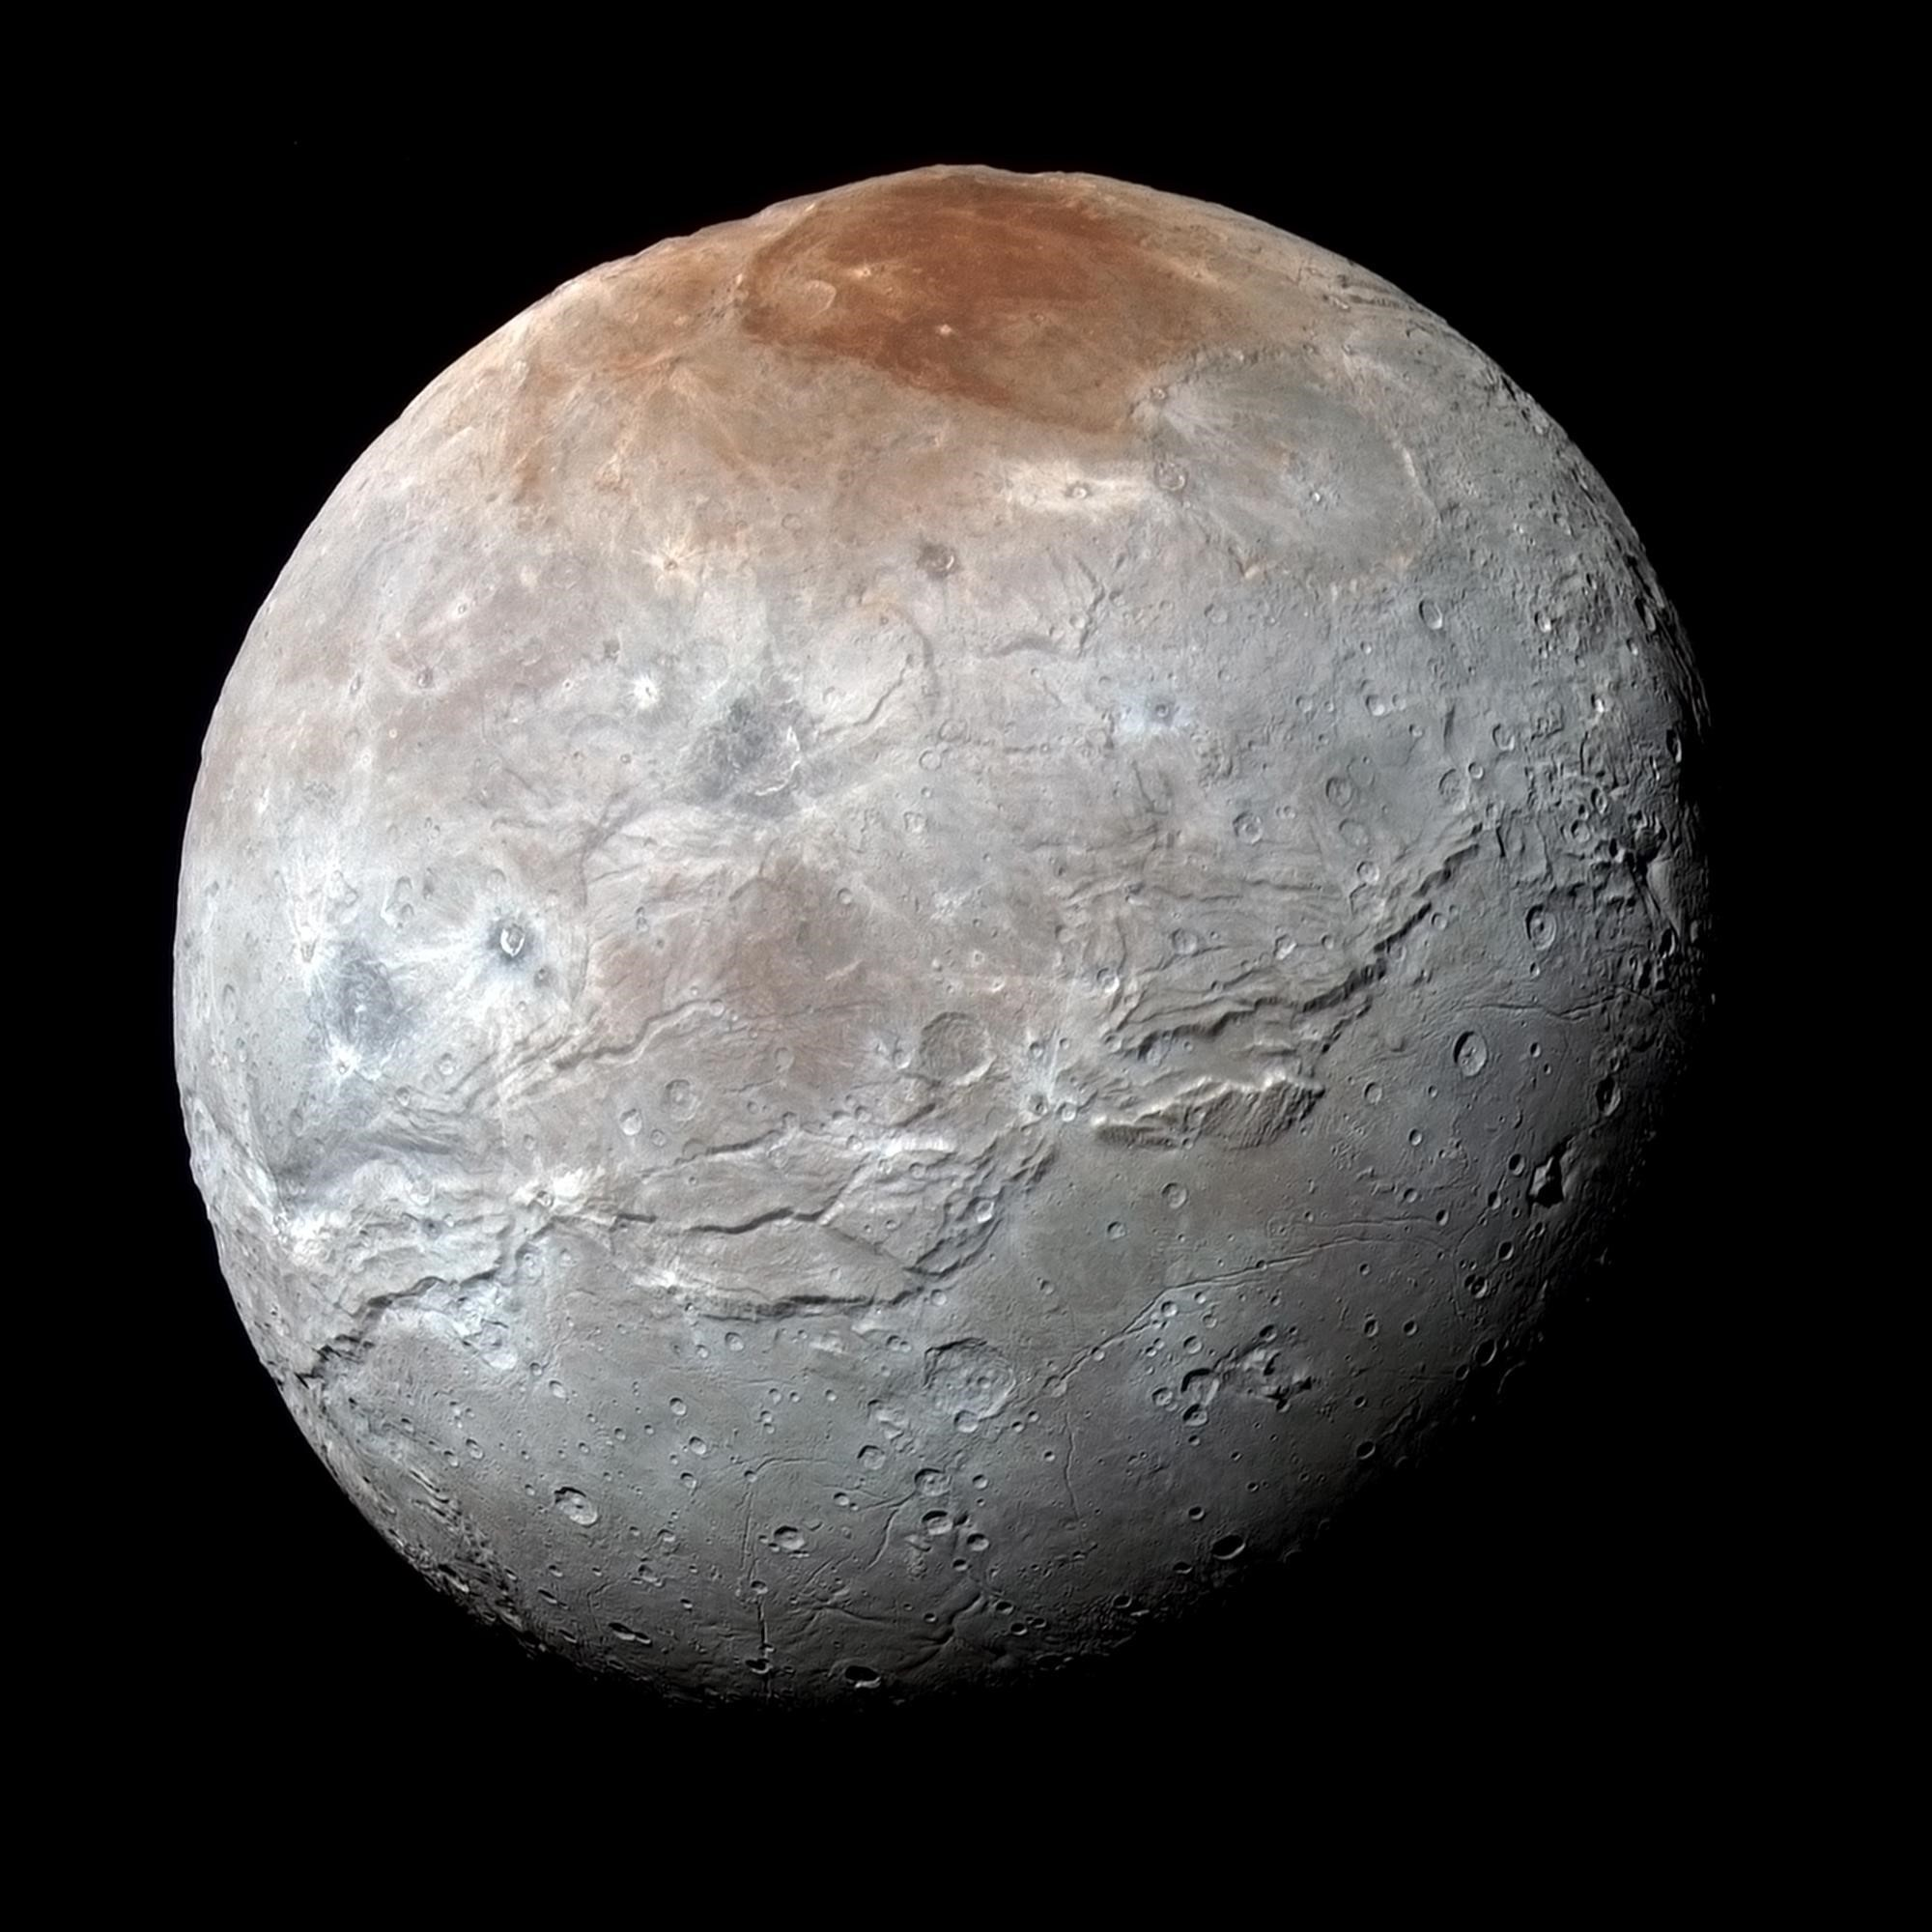 Pluto's moon, Charon. Image Credit: NASA/Johns Hopkins University Applied Physics Laboratory/Southwest Research Institute